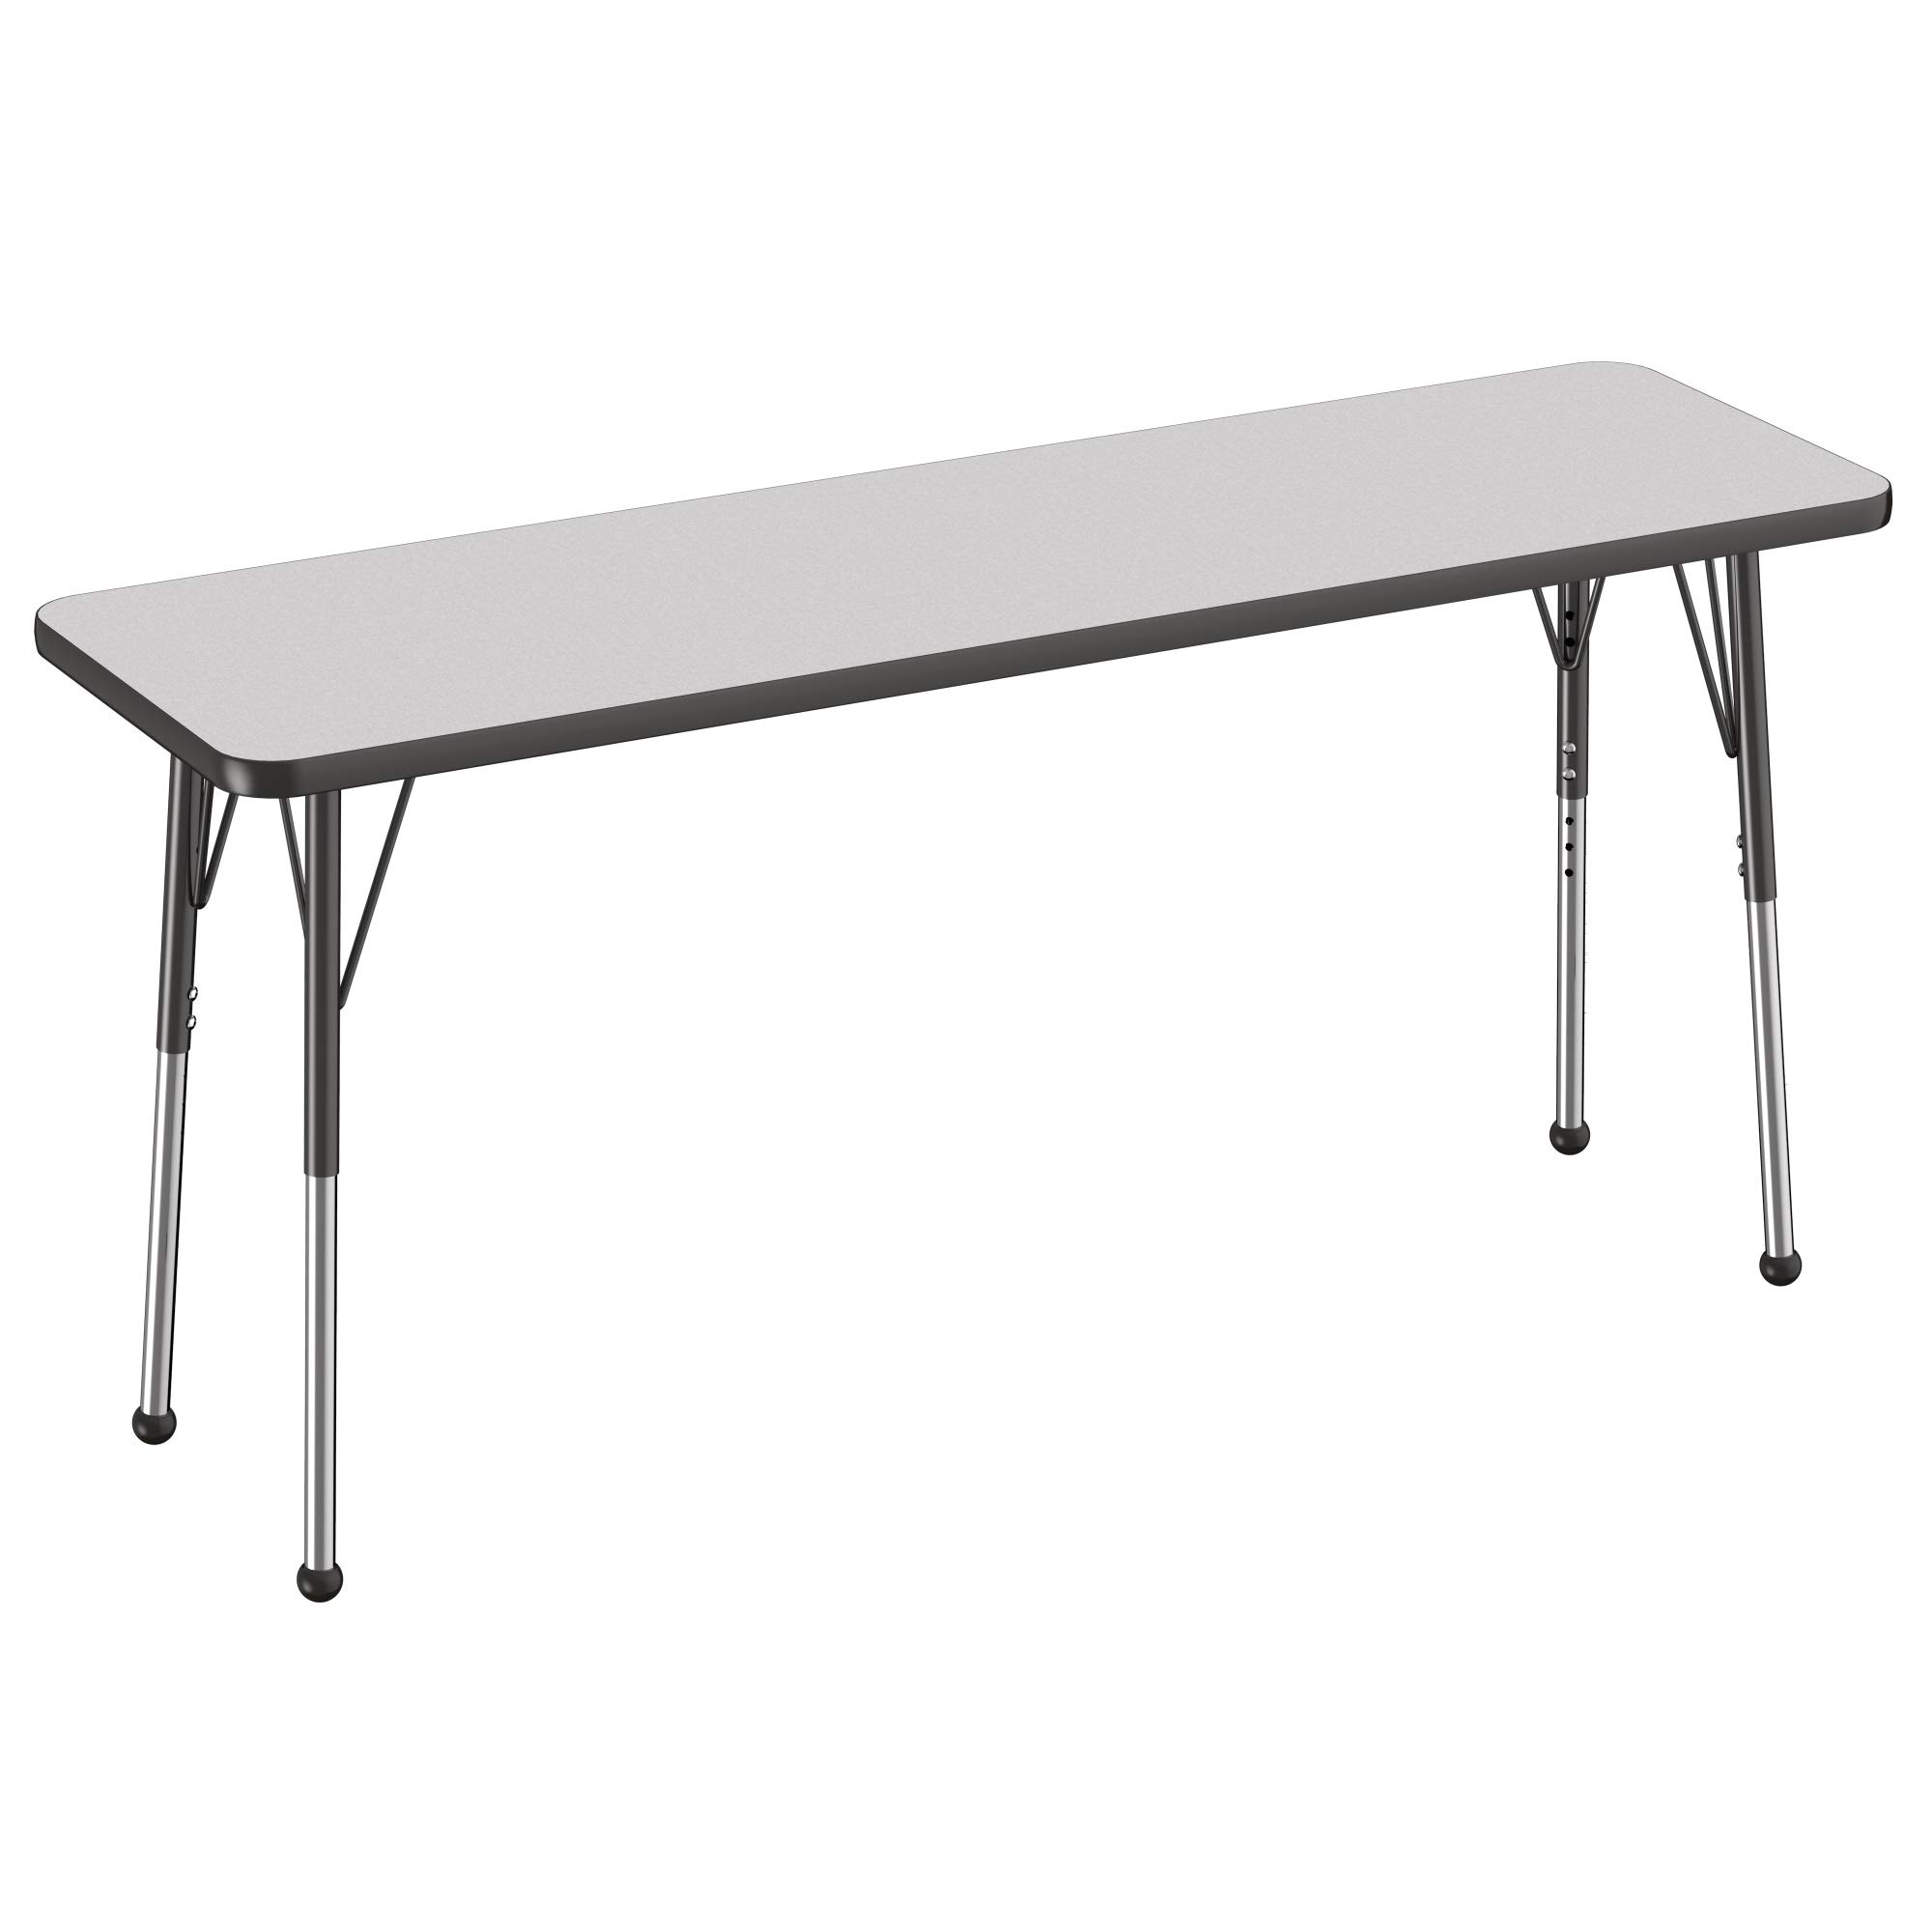 FDP Rectangle Activity School and Office Table (18 x 60 inch) Standard Legs with Ball Glides Adjustable Height 19-30 inches - Gray Top and Black Edge by Factory Direct Partners